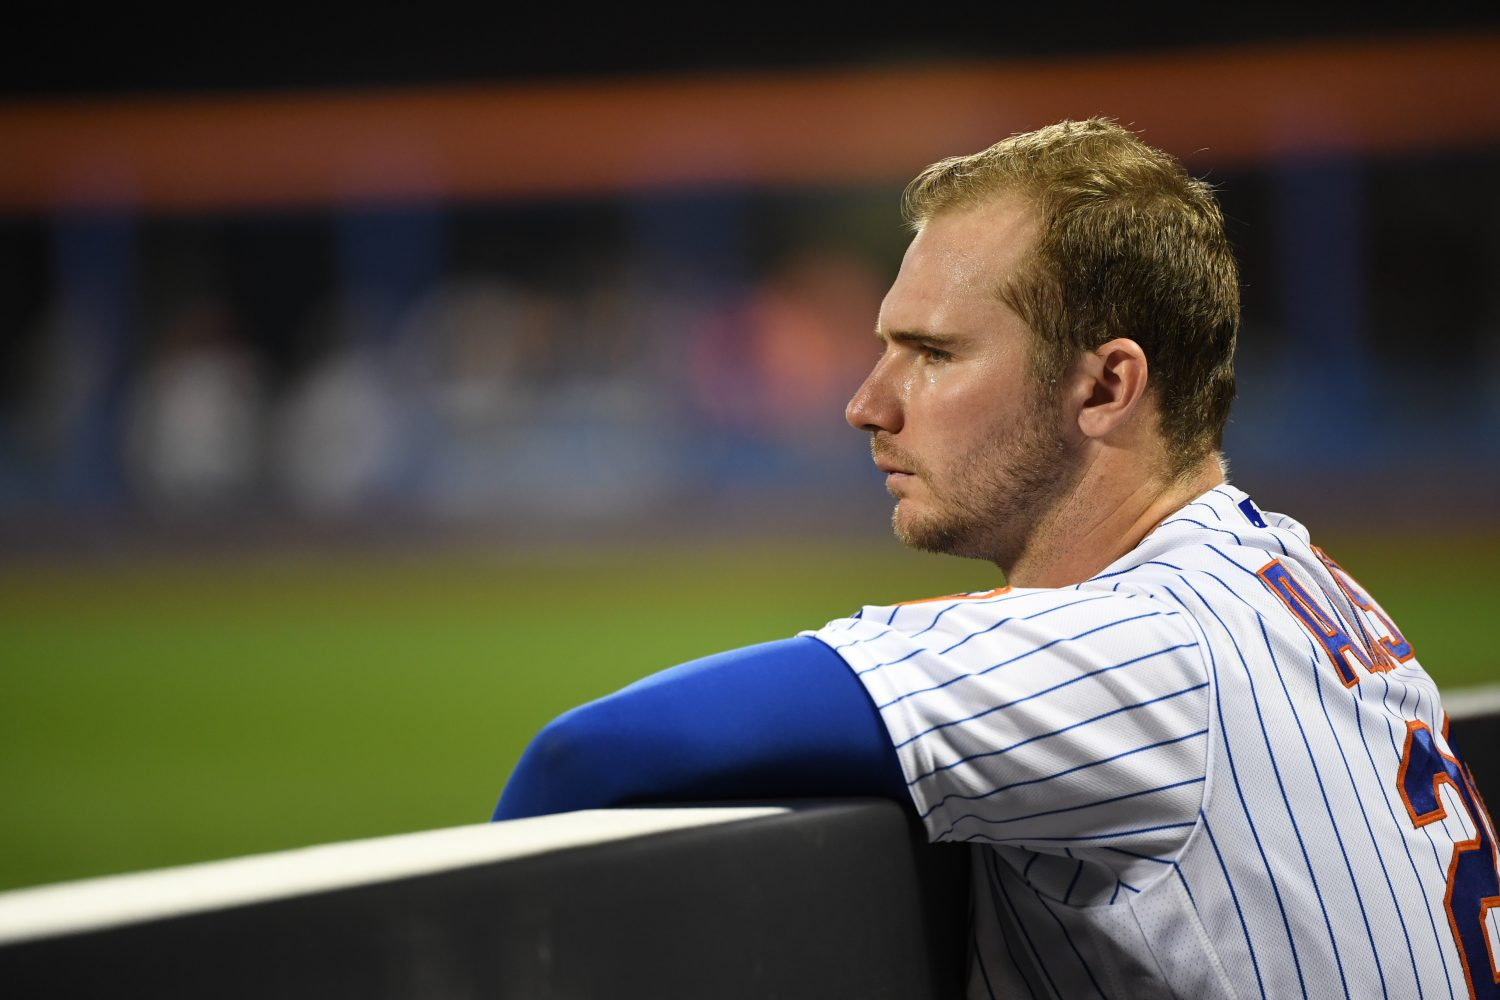 Pete Alonso Deep in Thought